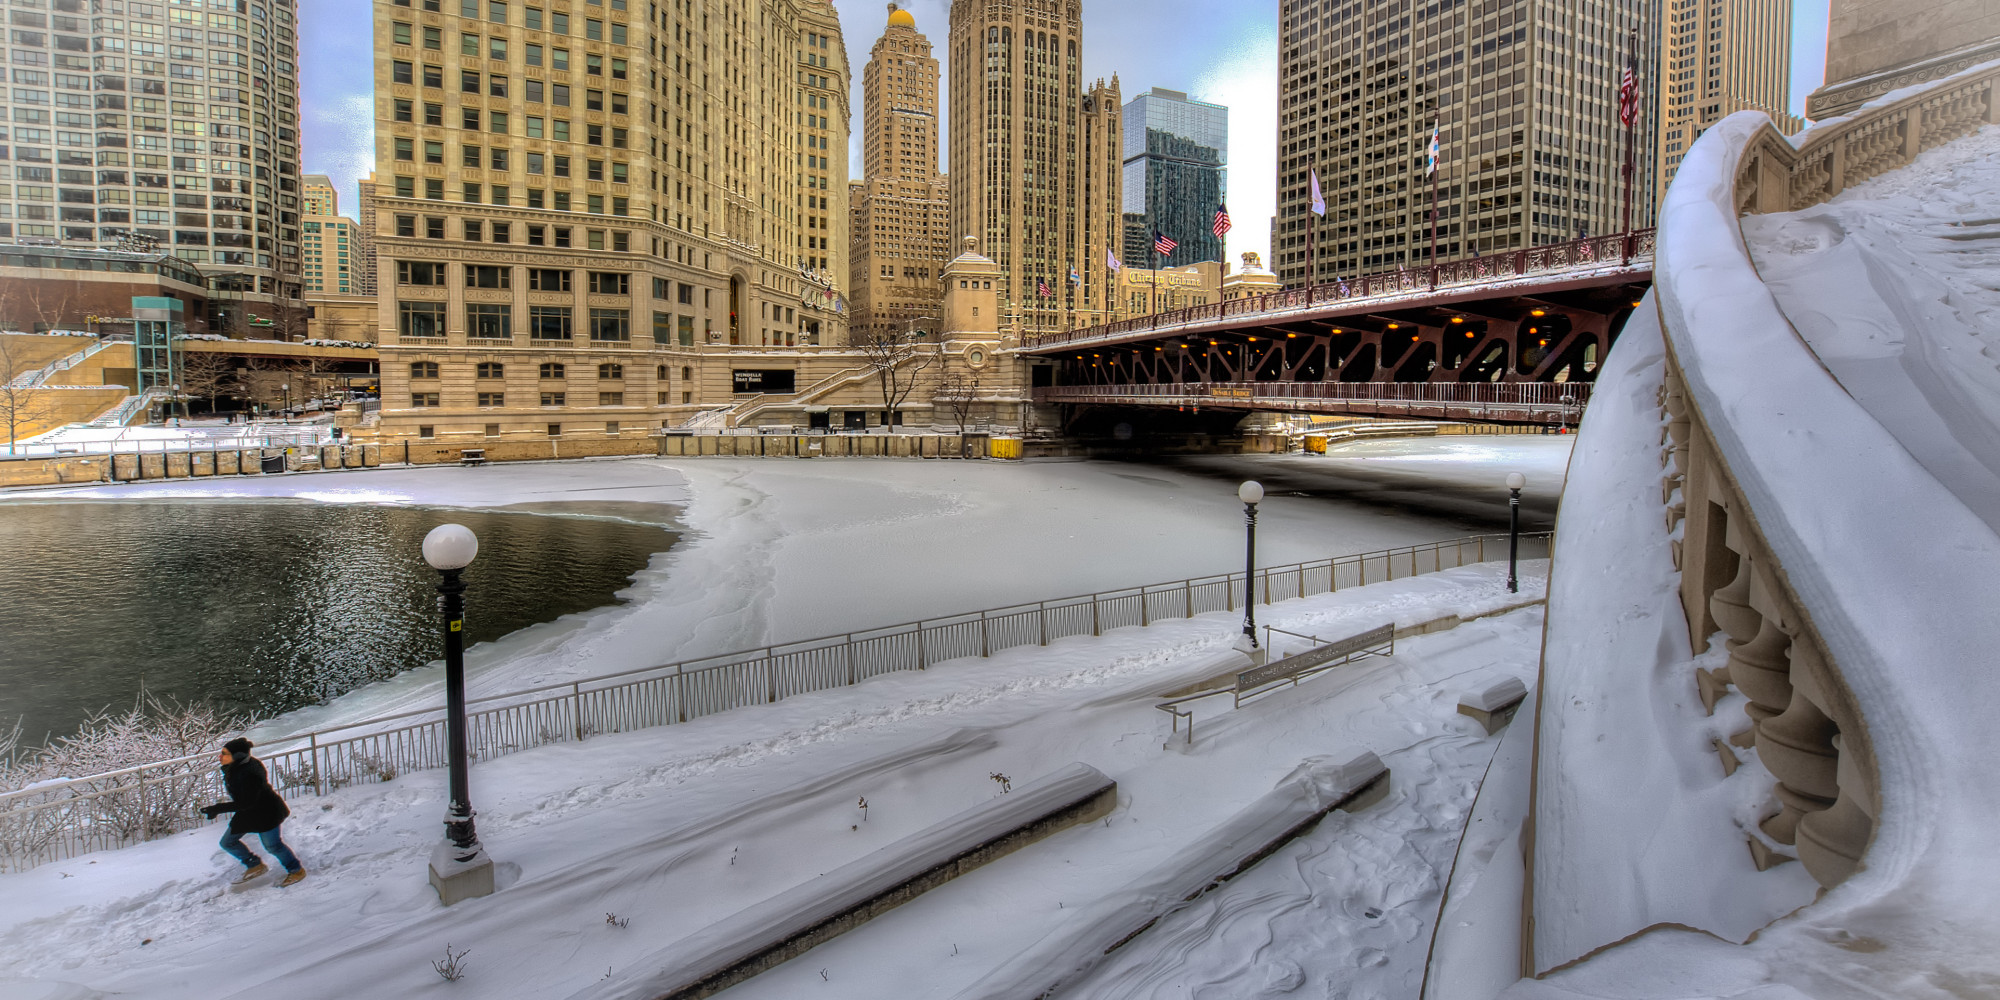 Chicago Snow Arctic Cold Returning Up To 5 Inches In Areas Saturday Bitter Temps Next Week